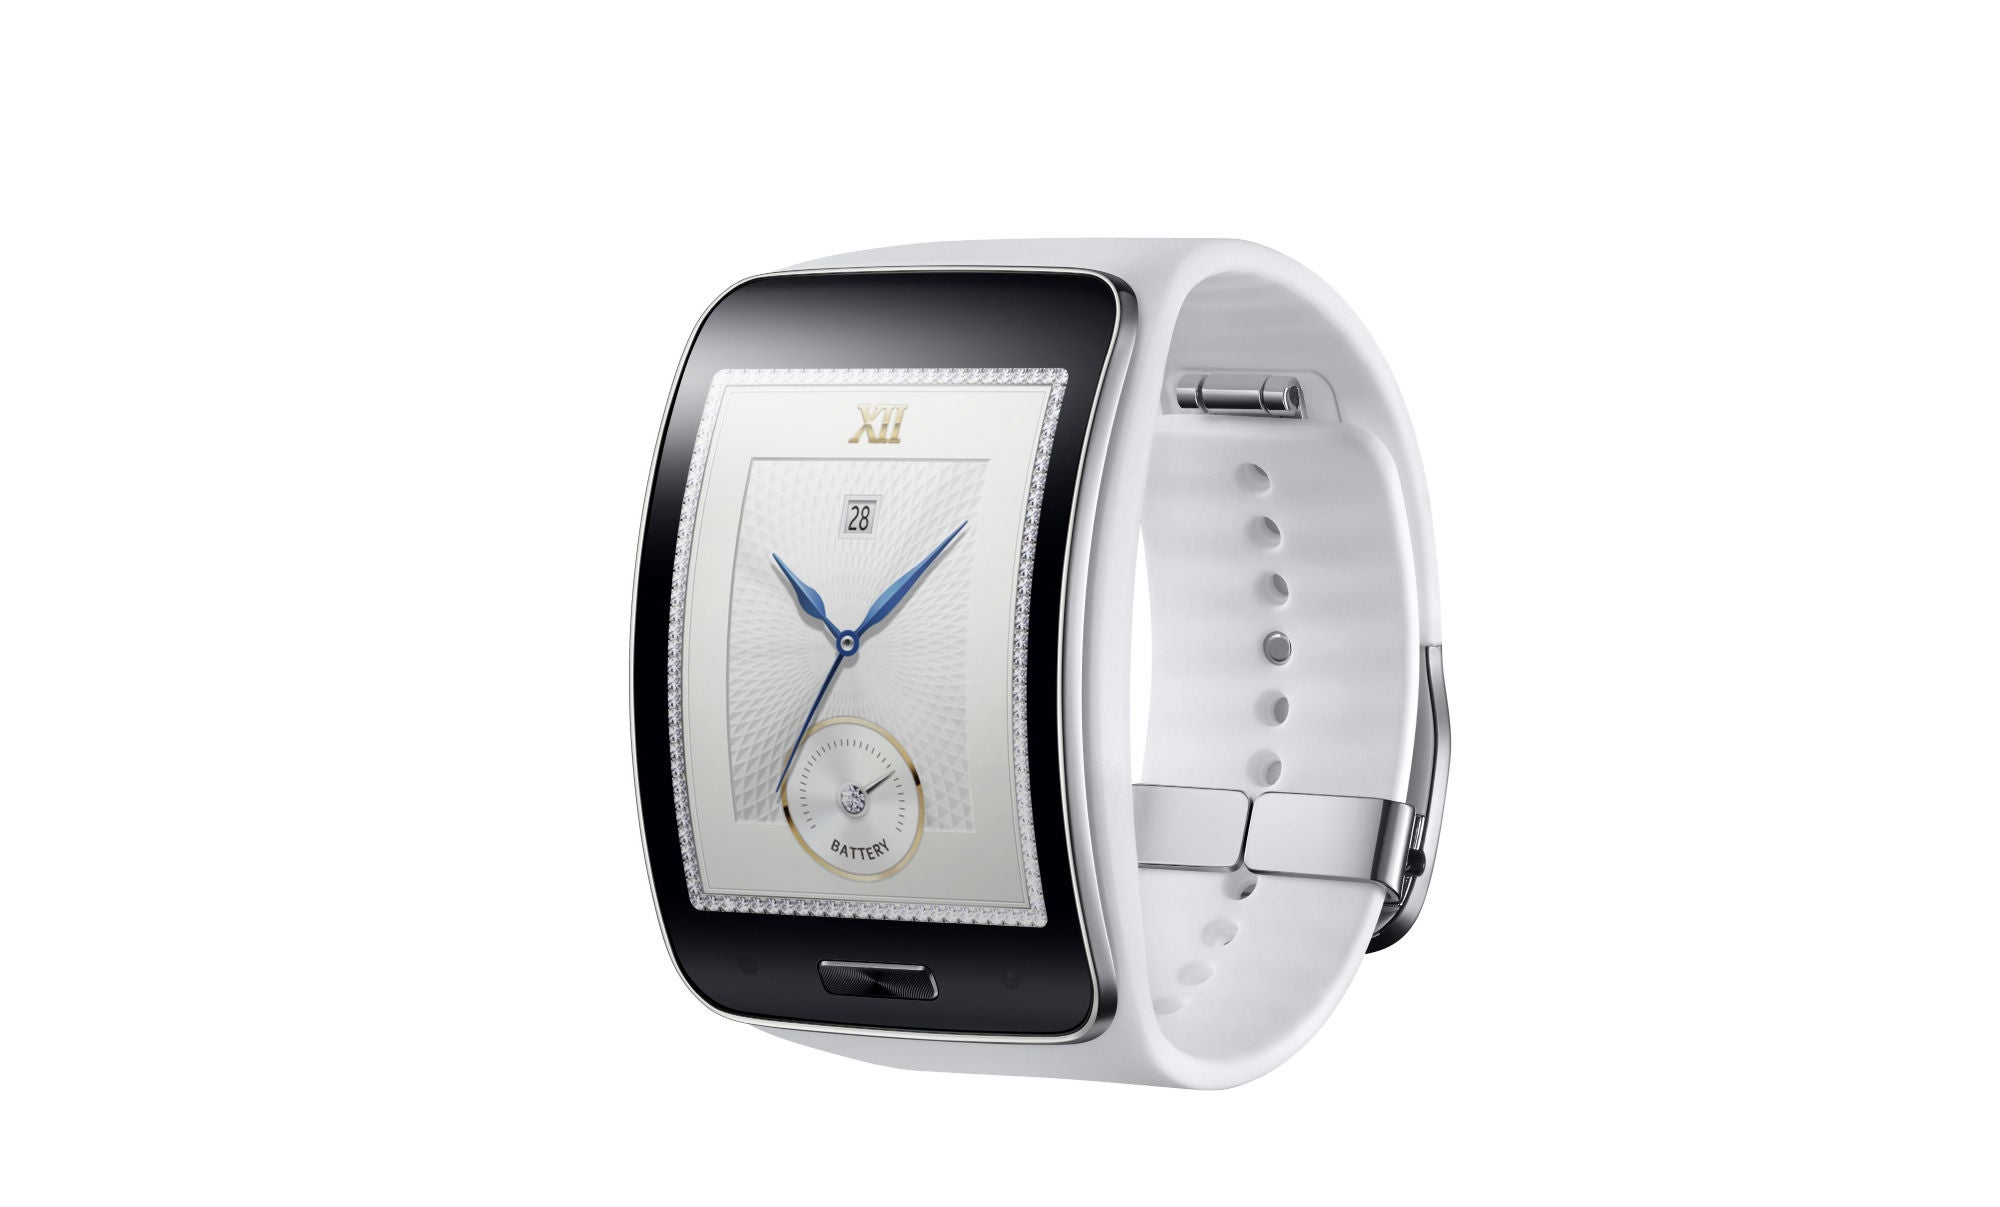 Samsung Gear S: Finally(?) a Smartwatch That Can Make Phone Calls